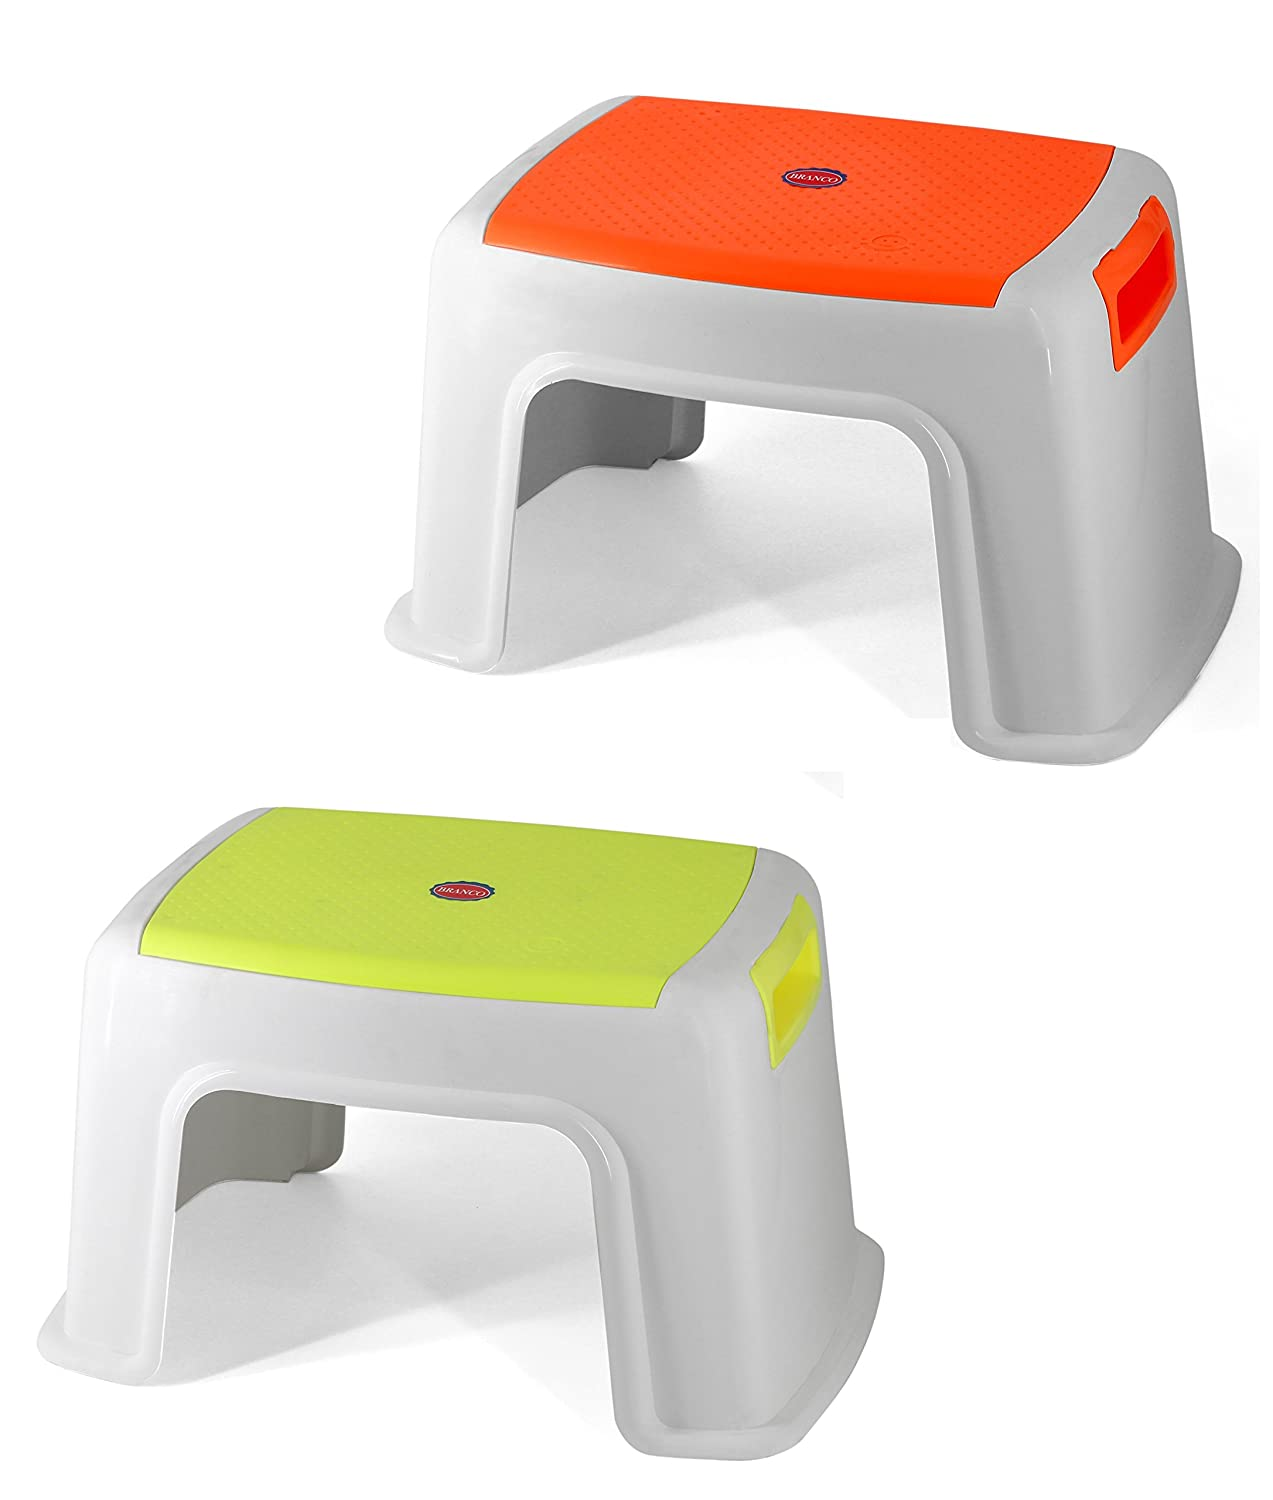 Ciplaplast Bathroom Plastic Stool - Toto (Assorted Colors) Amazon.in Home u0026 Kitchen  sc 1 st  Amazon.in : plastic stool - islam-shia.org